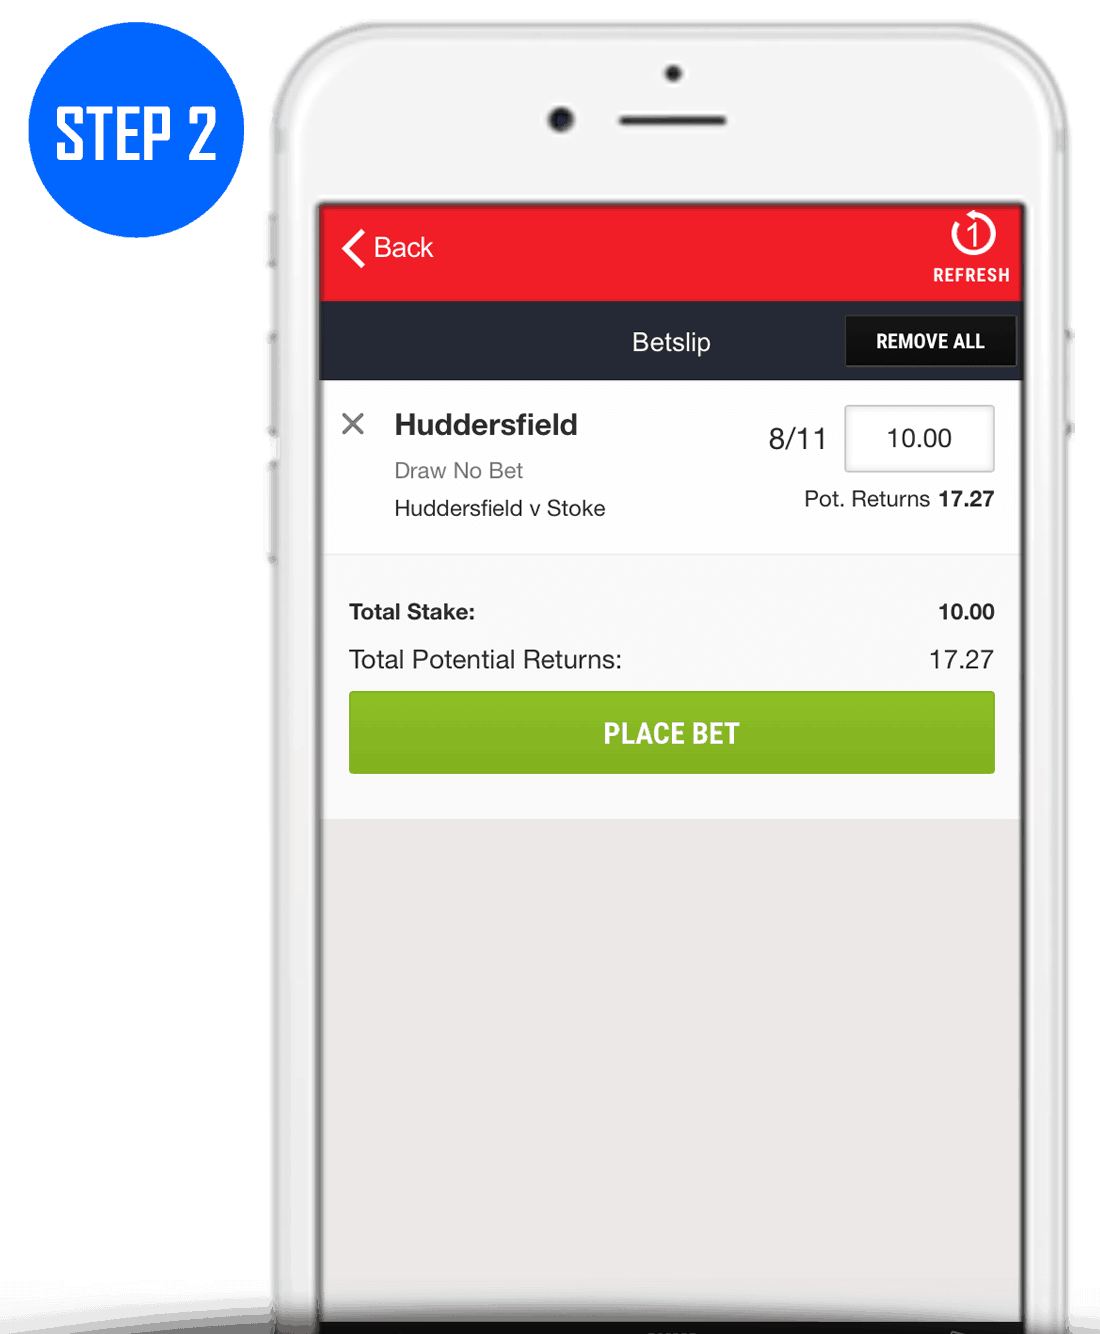 How To Place A Draw No Bet Step 2